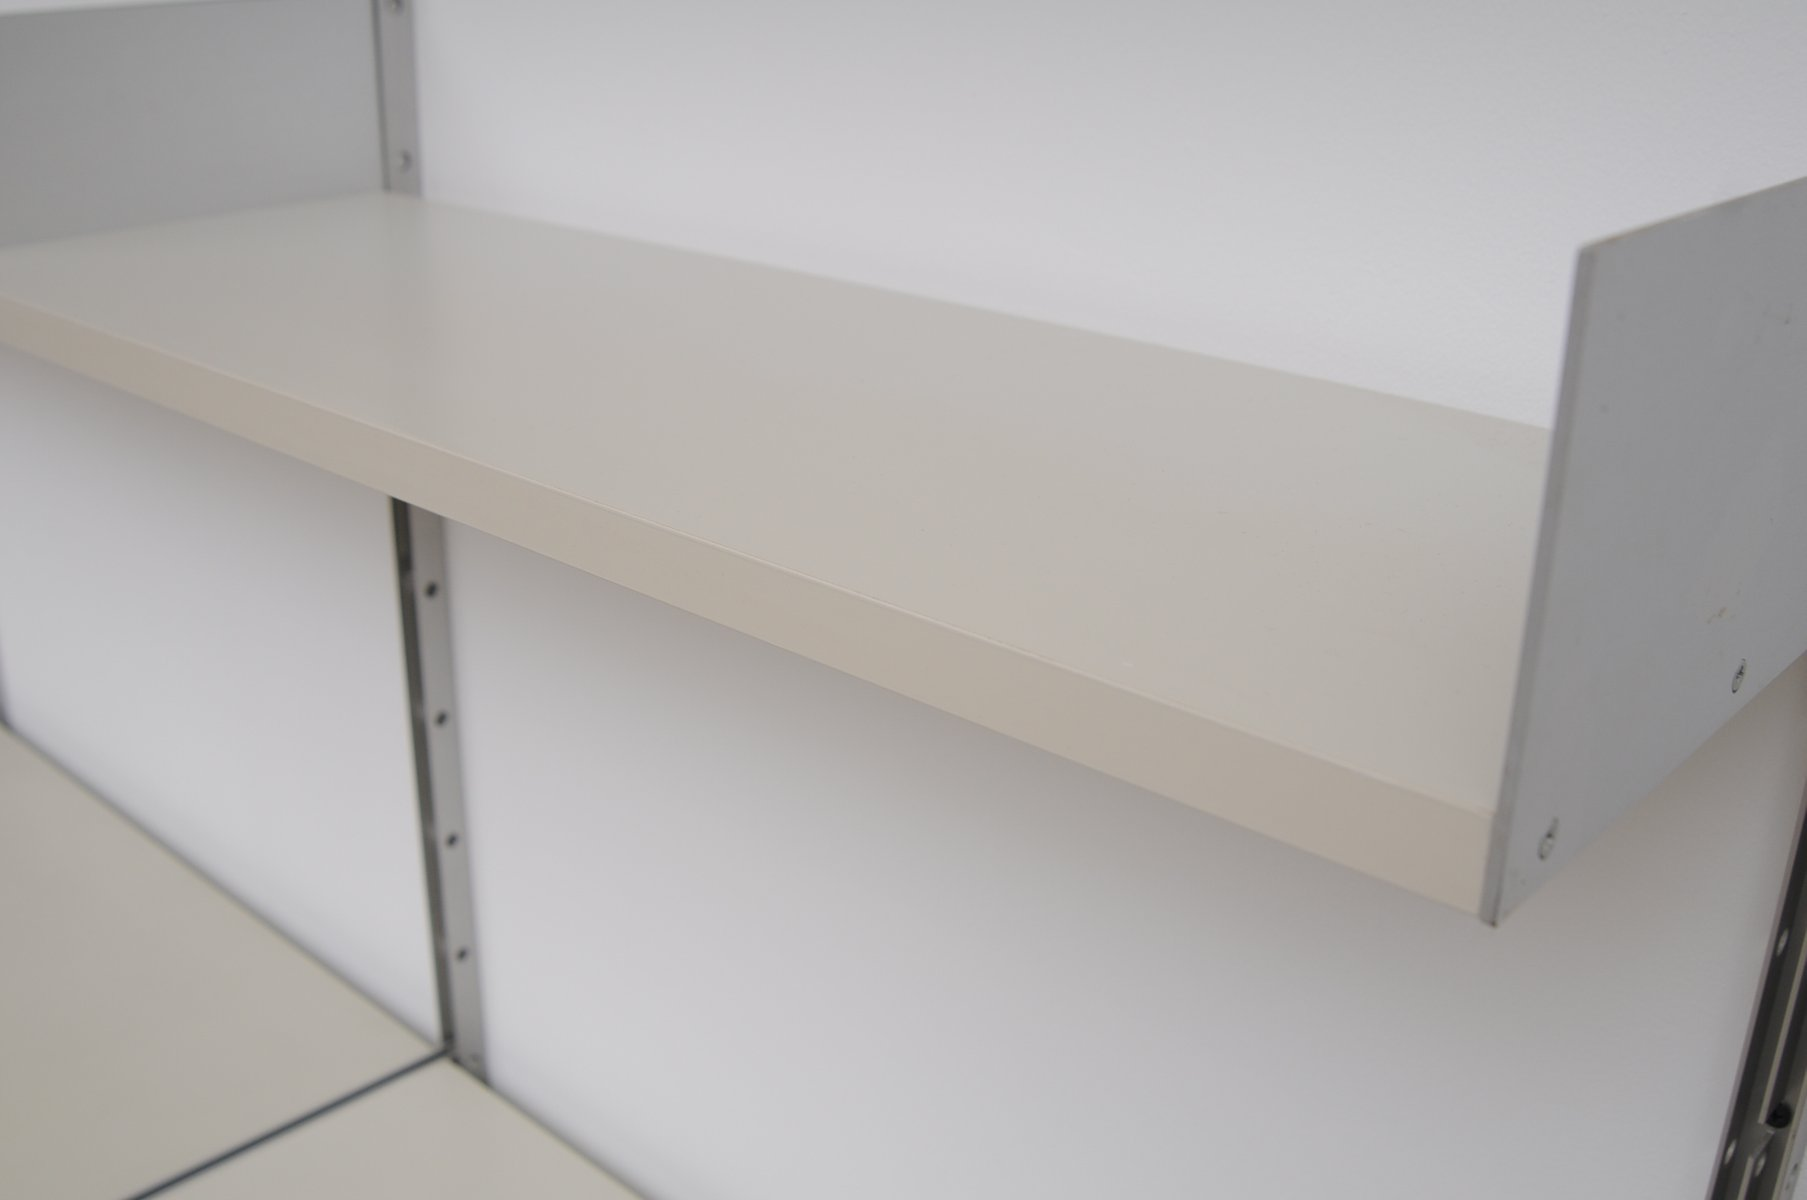 vintage 606 shelving system by dieter rams for vitsoe